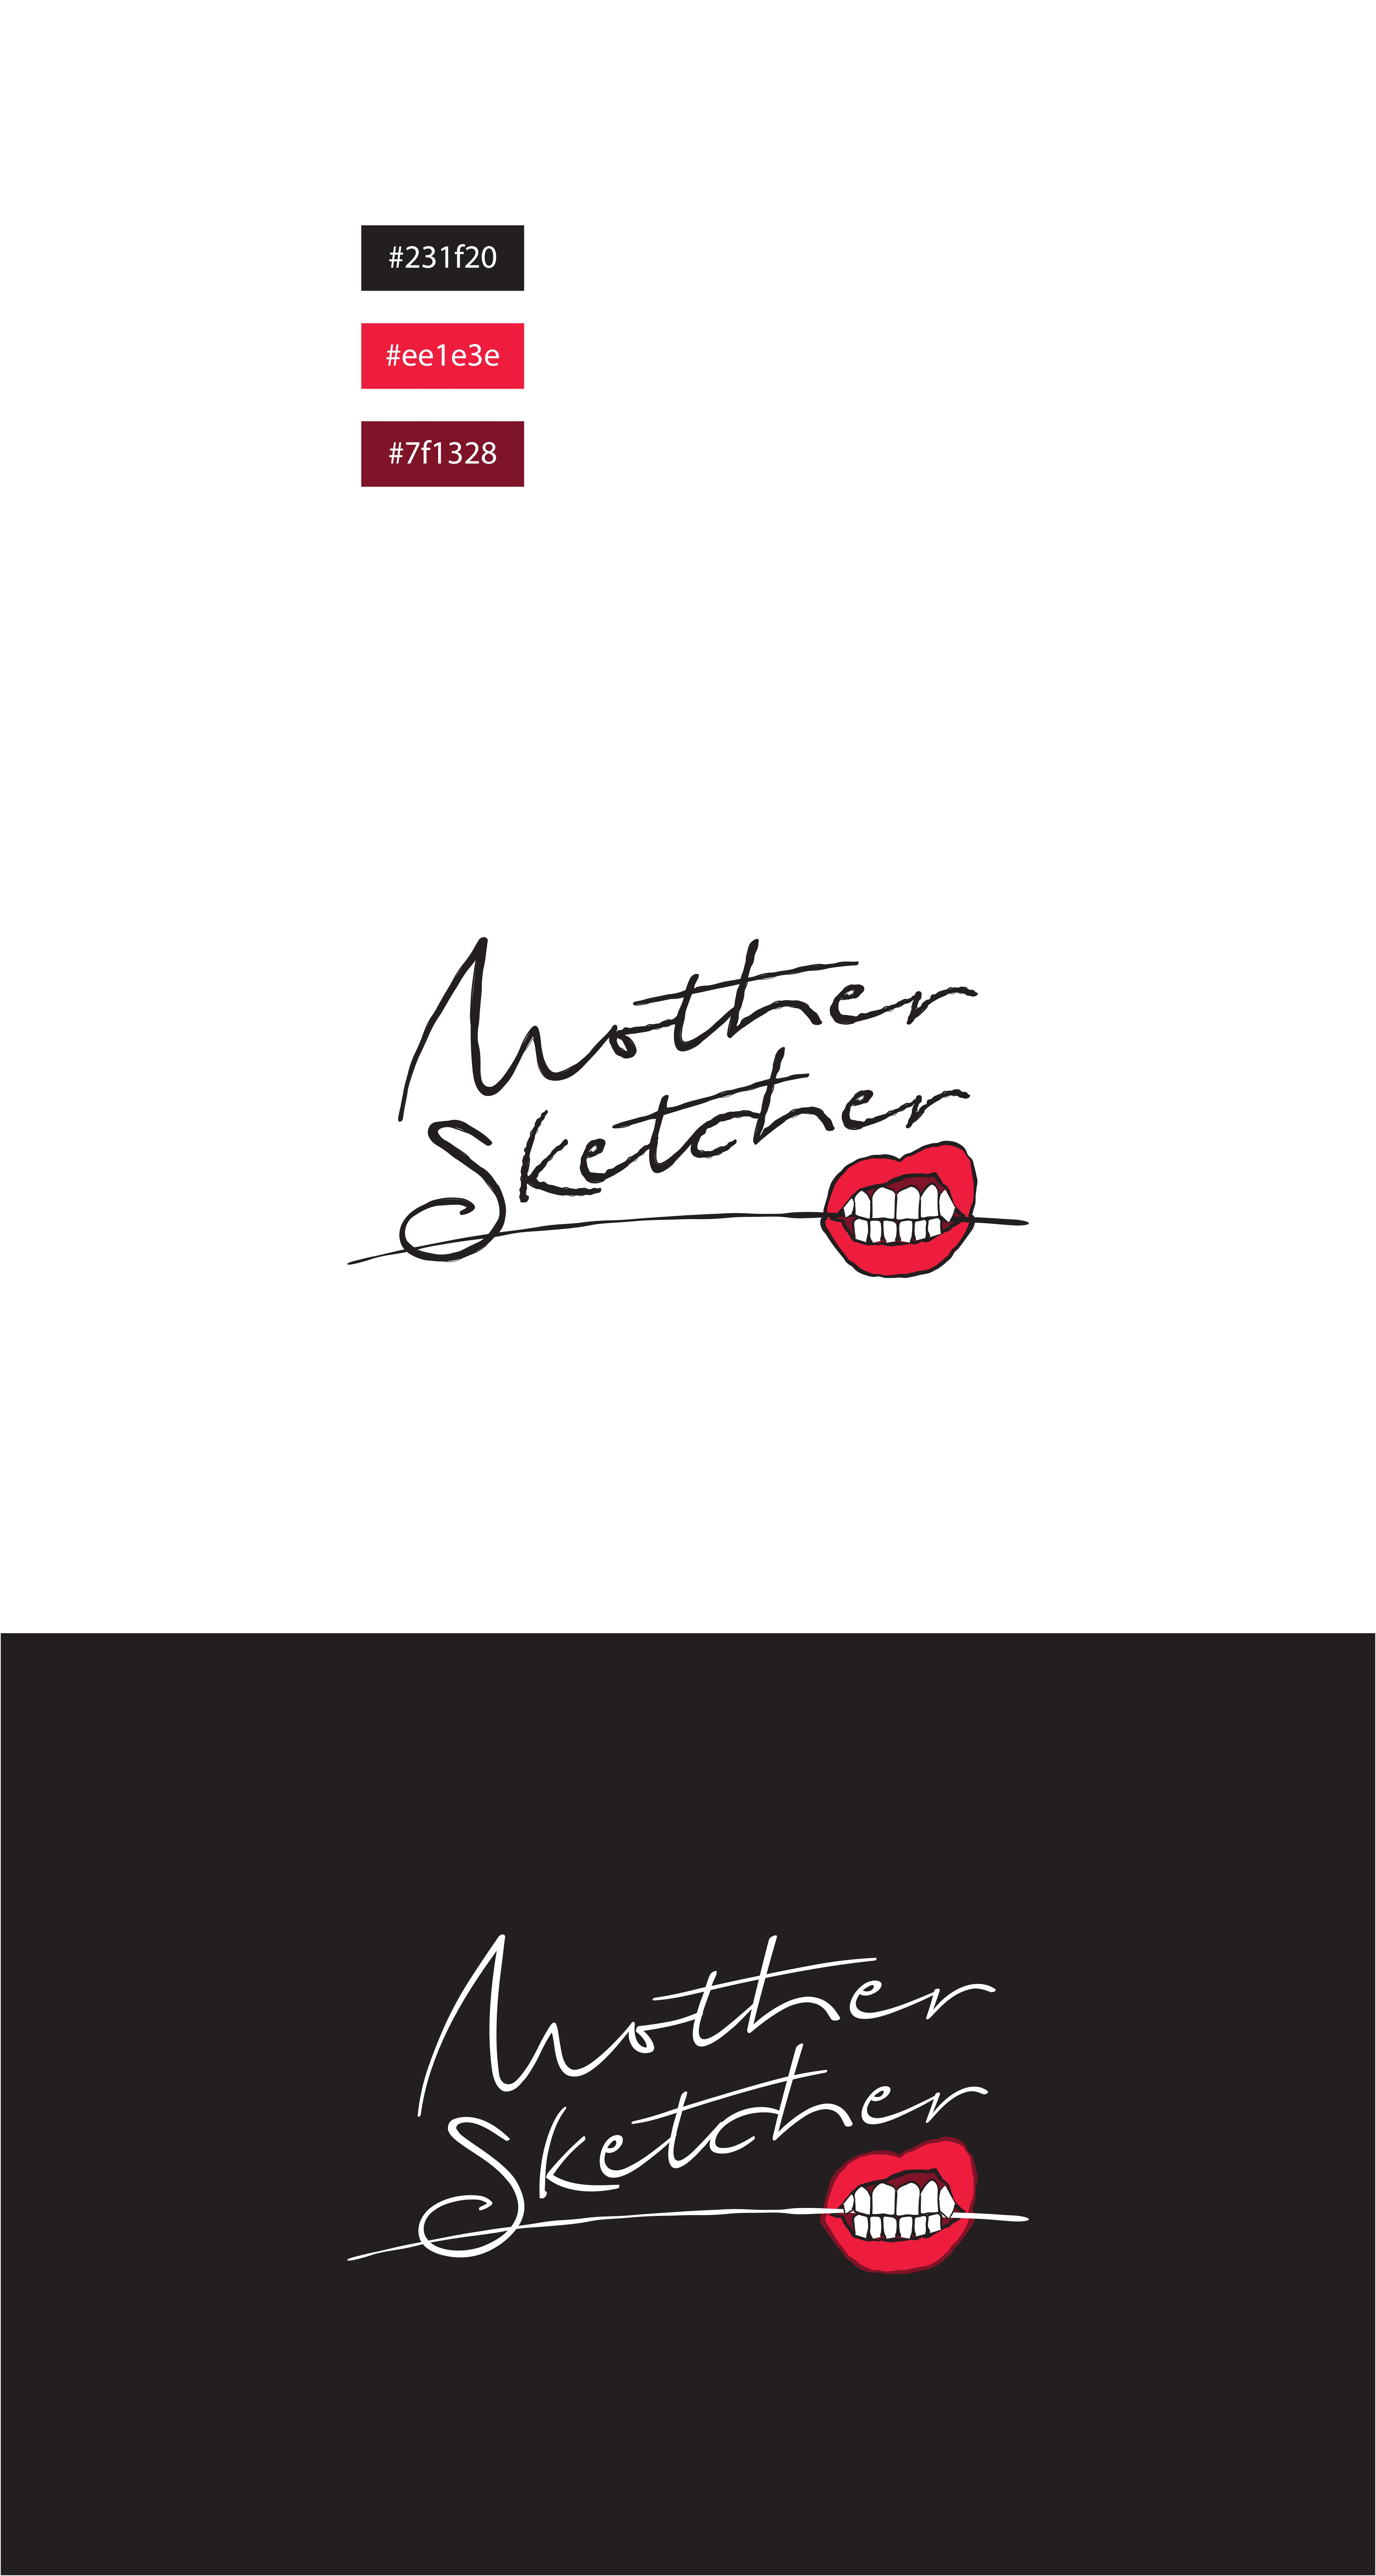 logo for fashion designer who sketches, paints and graffitis vintage clothing and bags